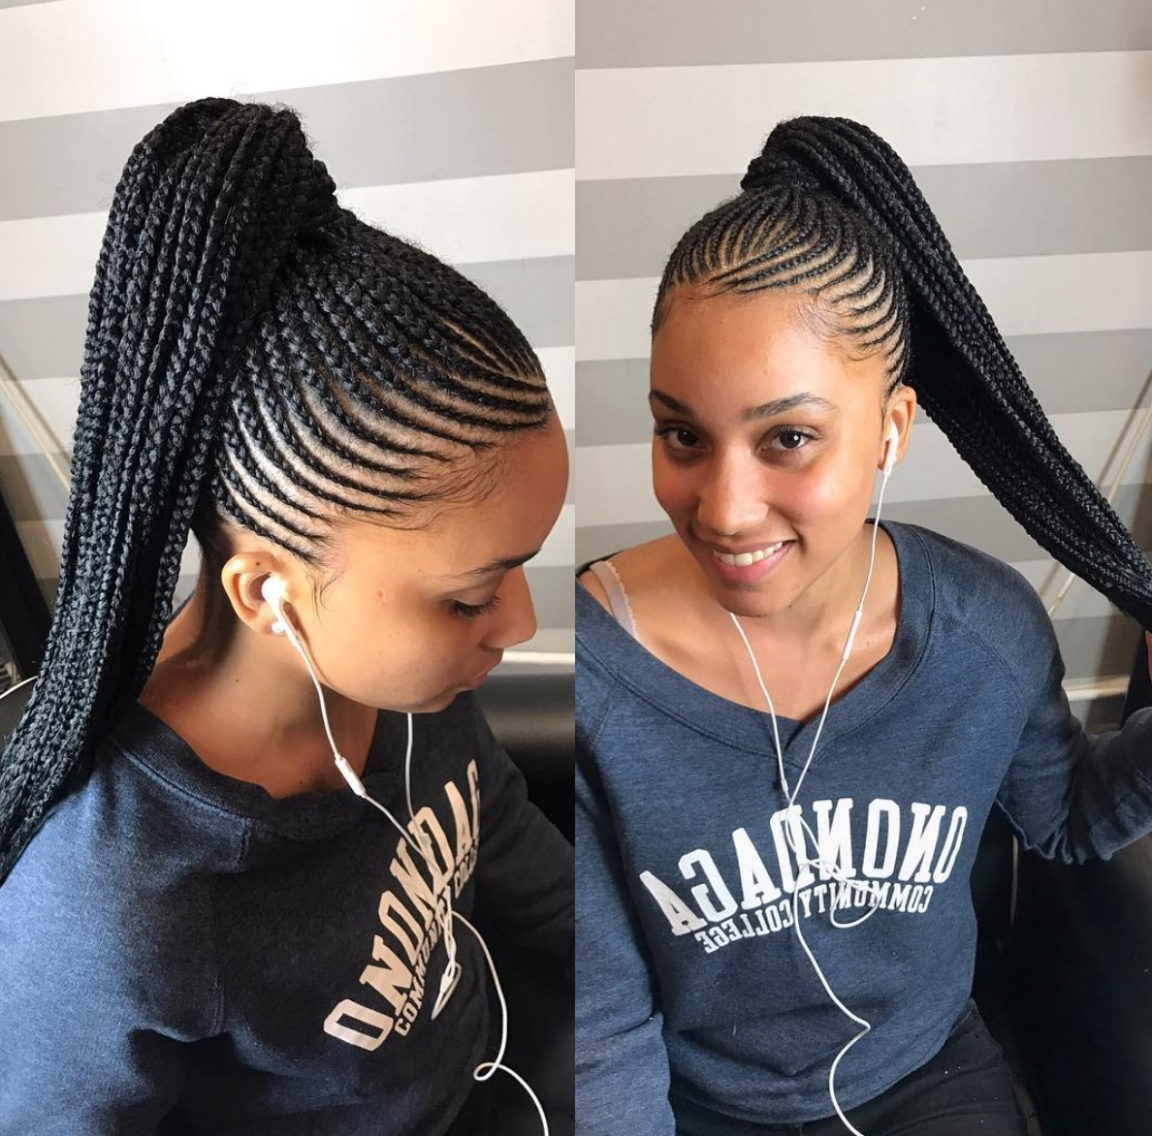 Braided Hairstyles For Black Hair – Hairstyles Parlor Pertaining To Current Braided Hairstyles For Black Hair (View 6 of 15)